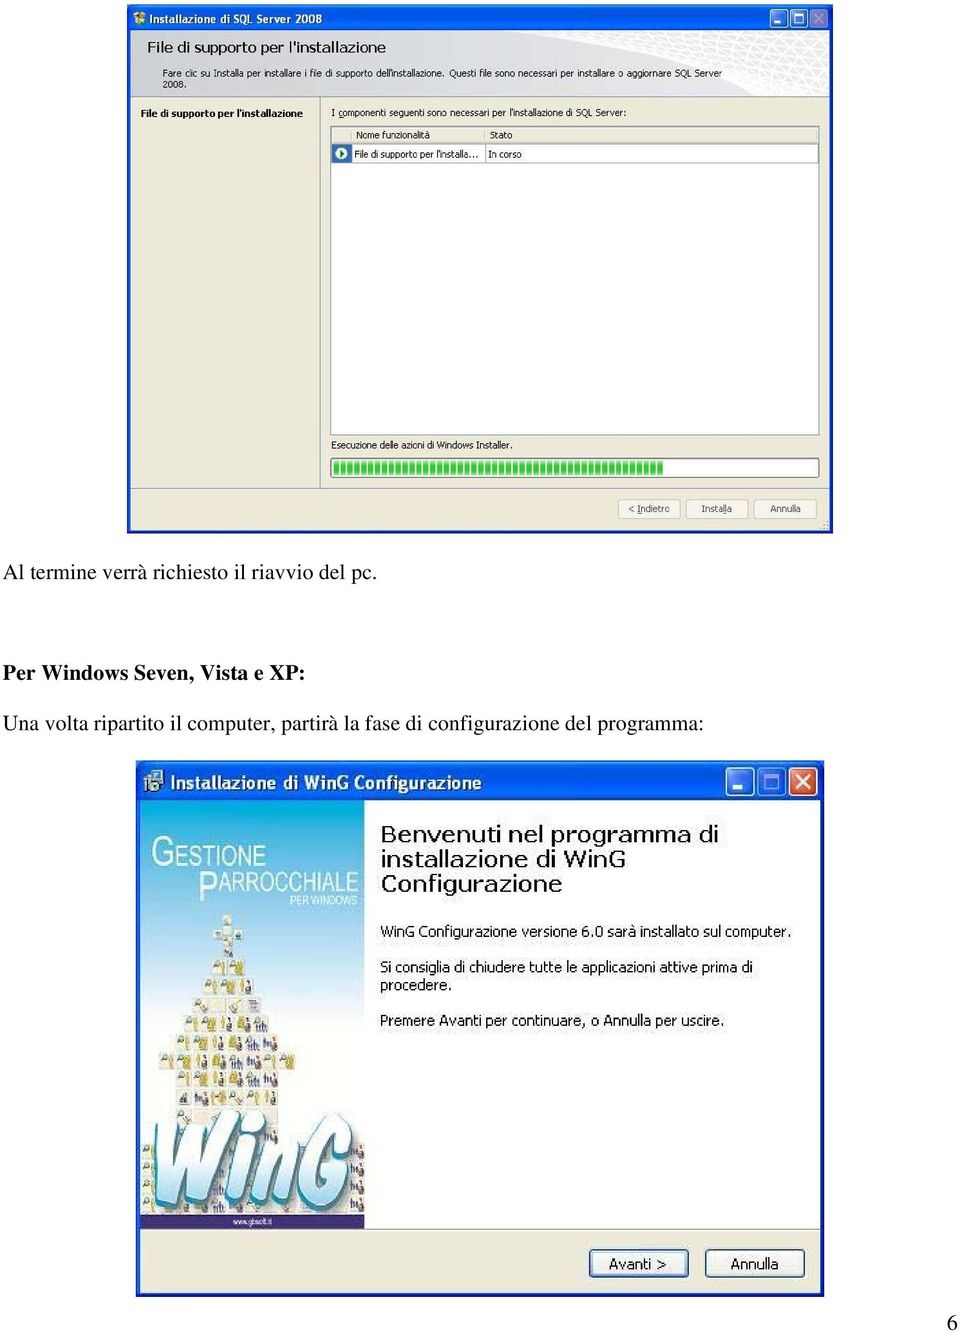 Per Windows Seven, Vista e XP: Una